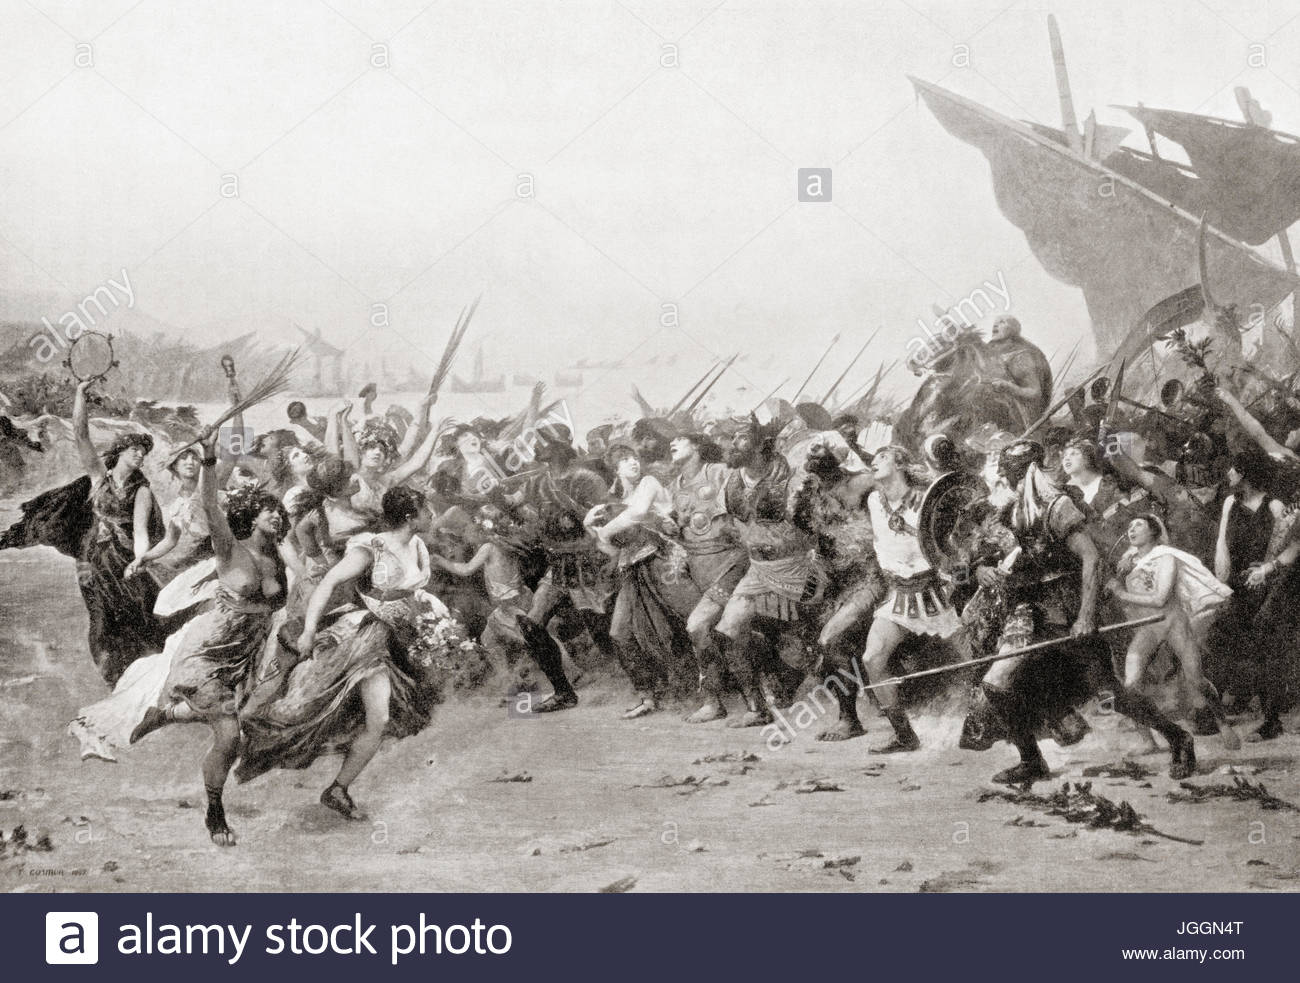 The Athenians rejoicing their victory after the naval Battle of Salamis, 480 BC.  From Hutchinson's History - Stock Image